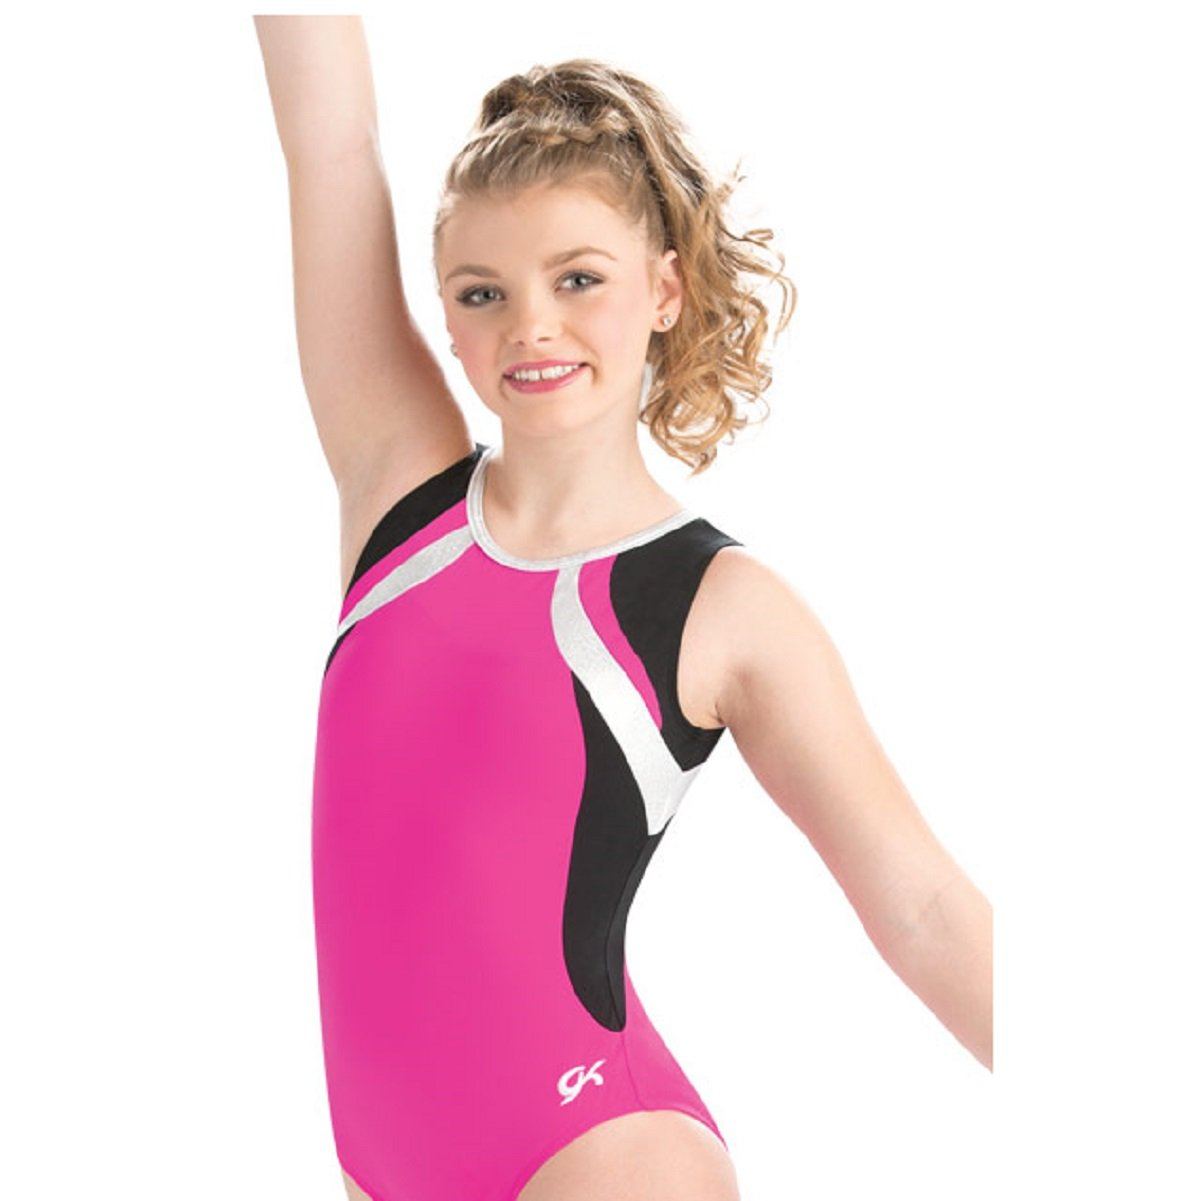 GK Elite Cerise Curve Leotard Child Medium CM by GK Elite